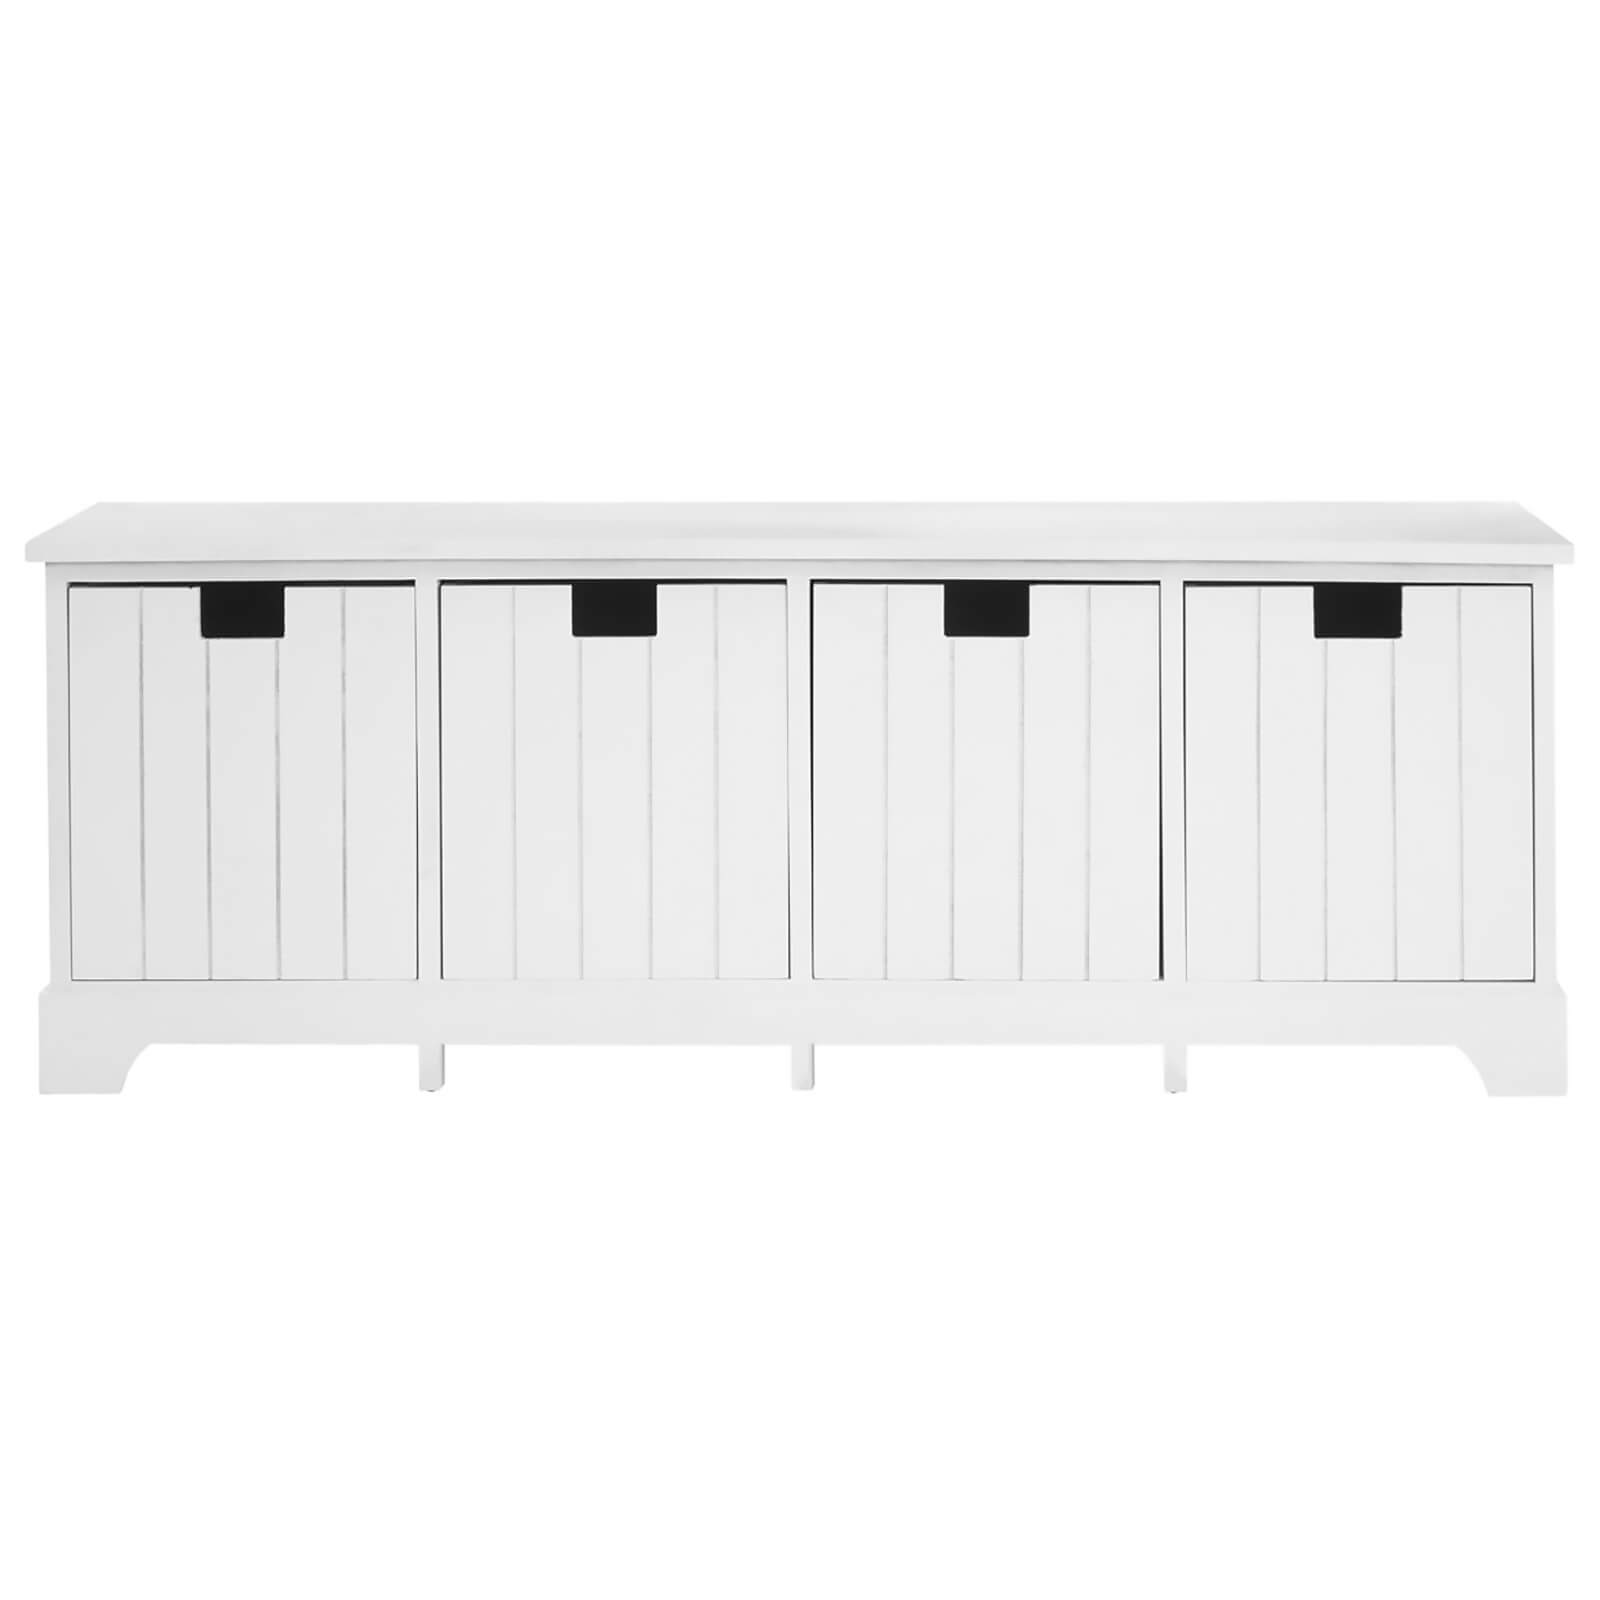 Fifty Five South New England Drawer Bench - White